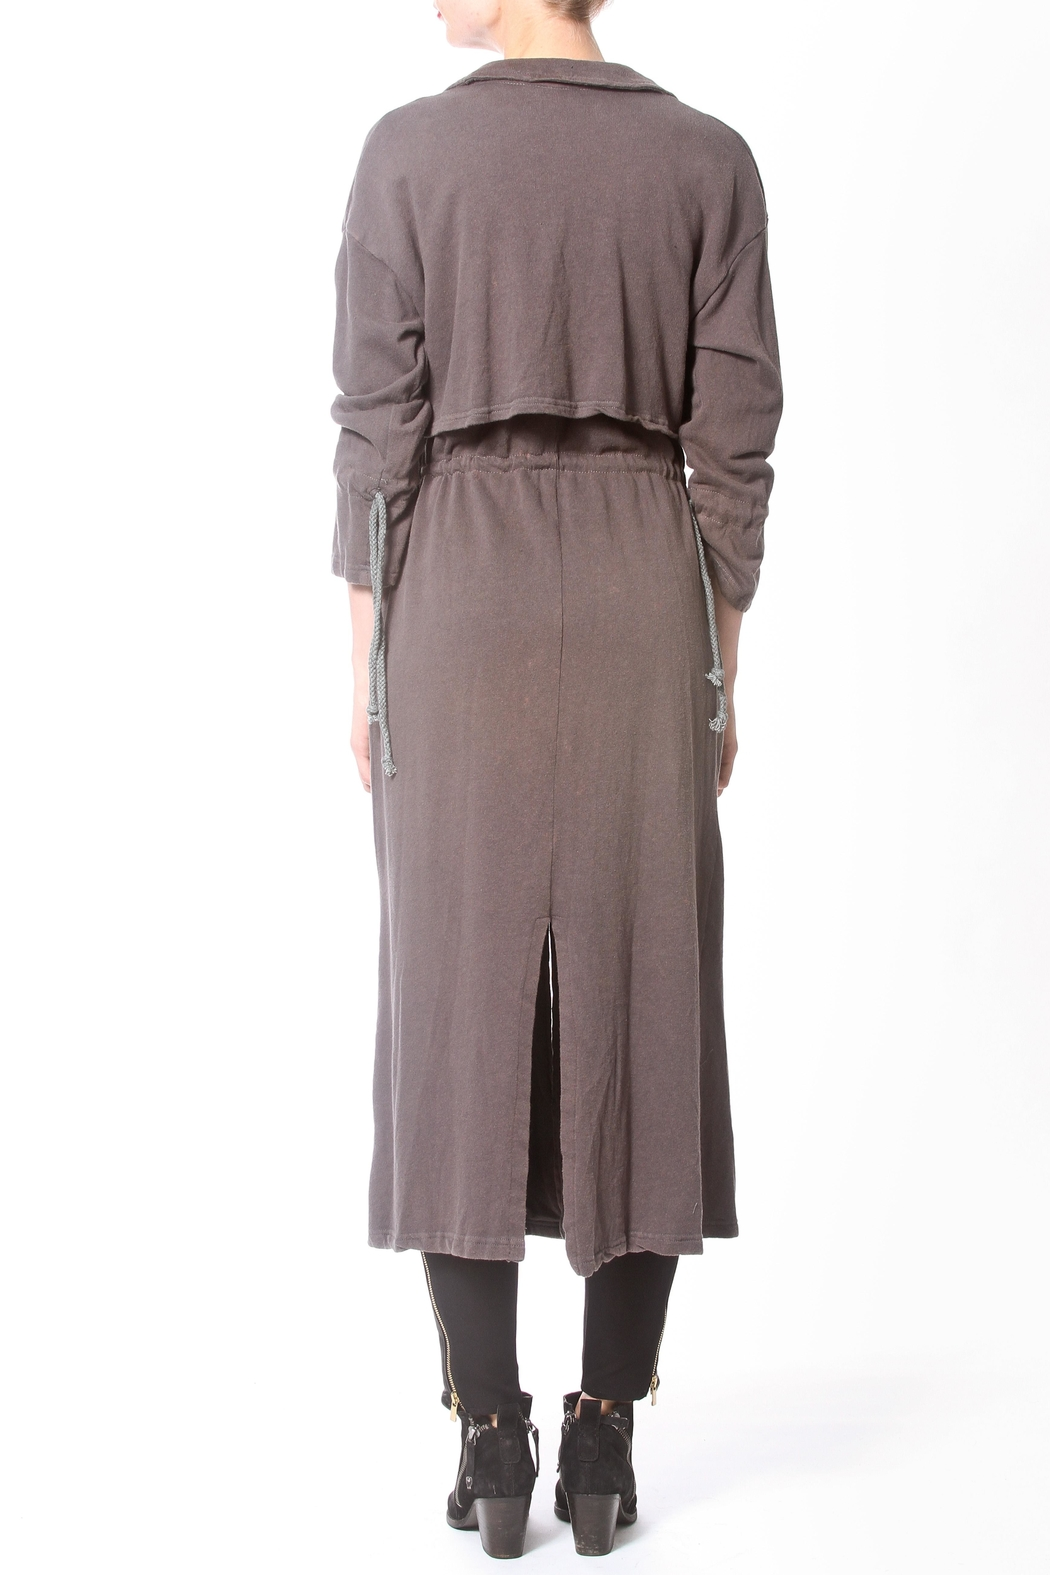 Madonna & Co Fleece Trench - Side Cropped Image